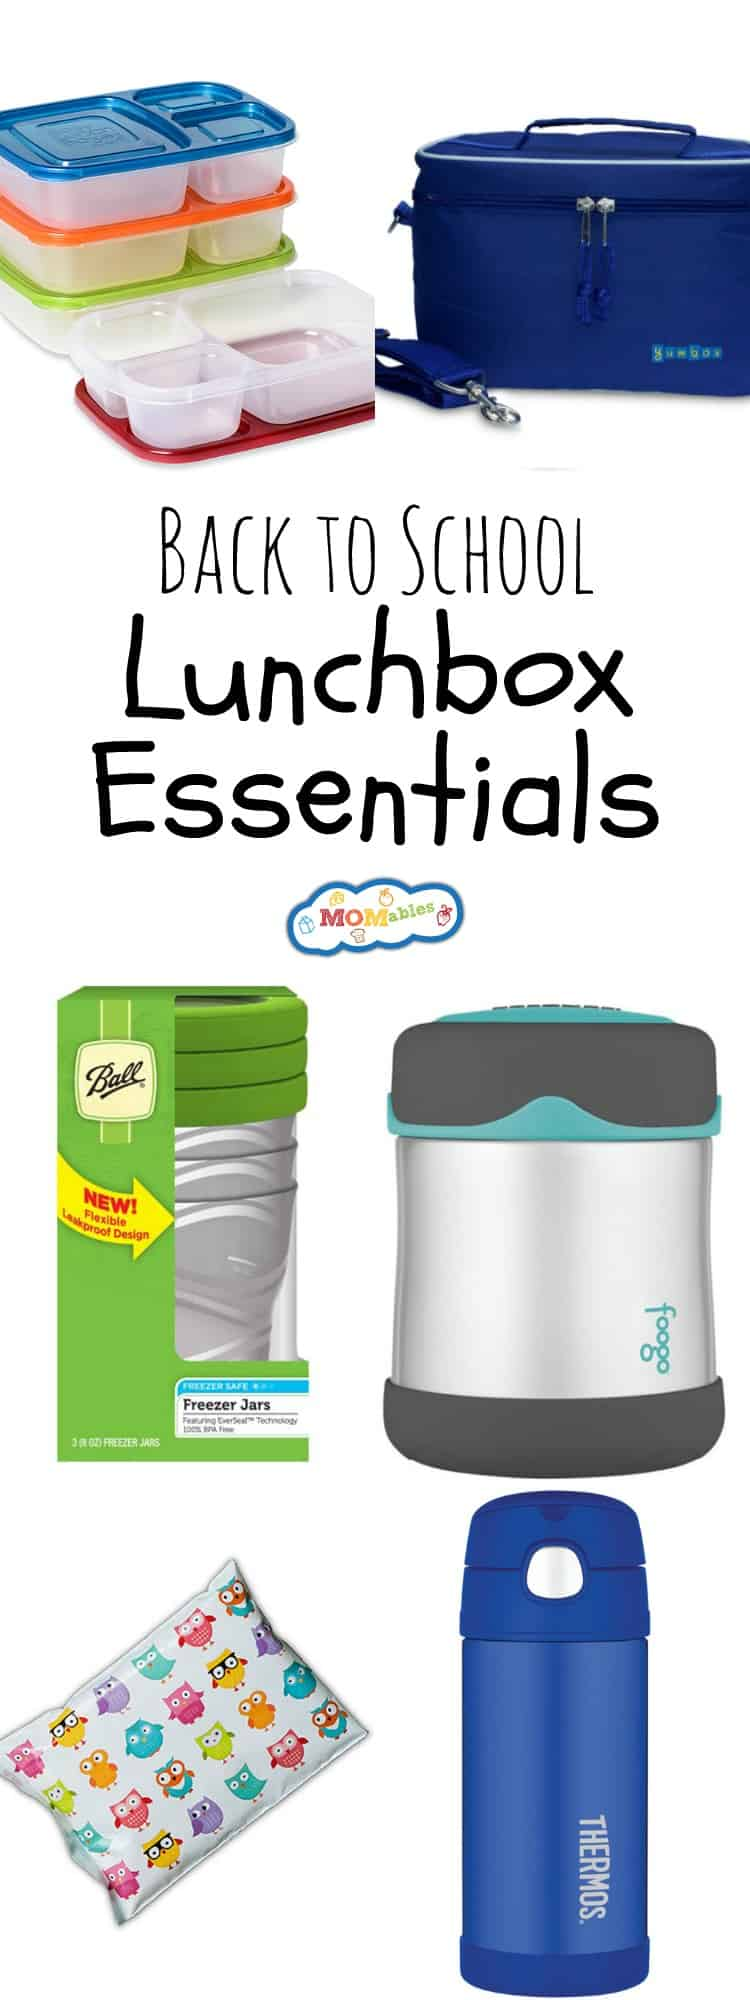 Are you prepared for packing the lunchbox? You must check out these essential lunchbox items to make sure you are packing lunches like a pro!